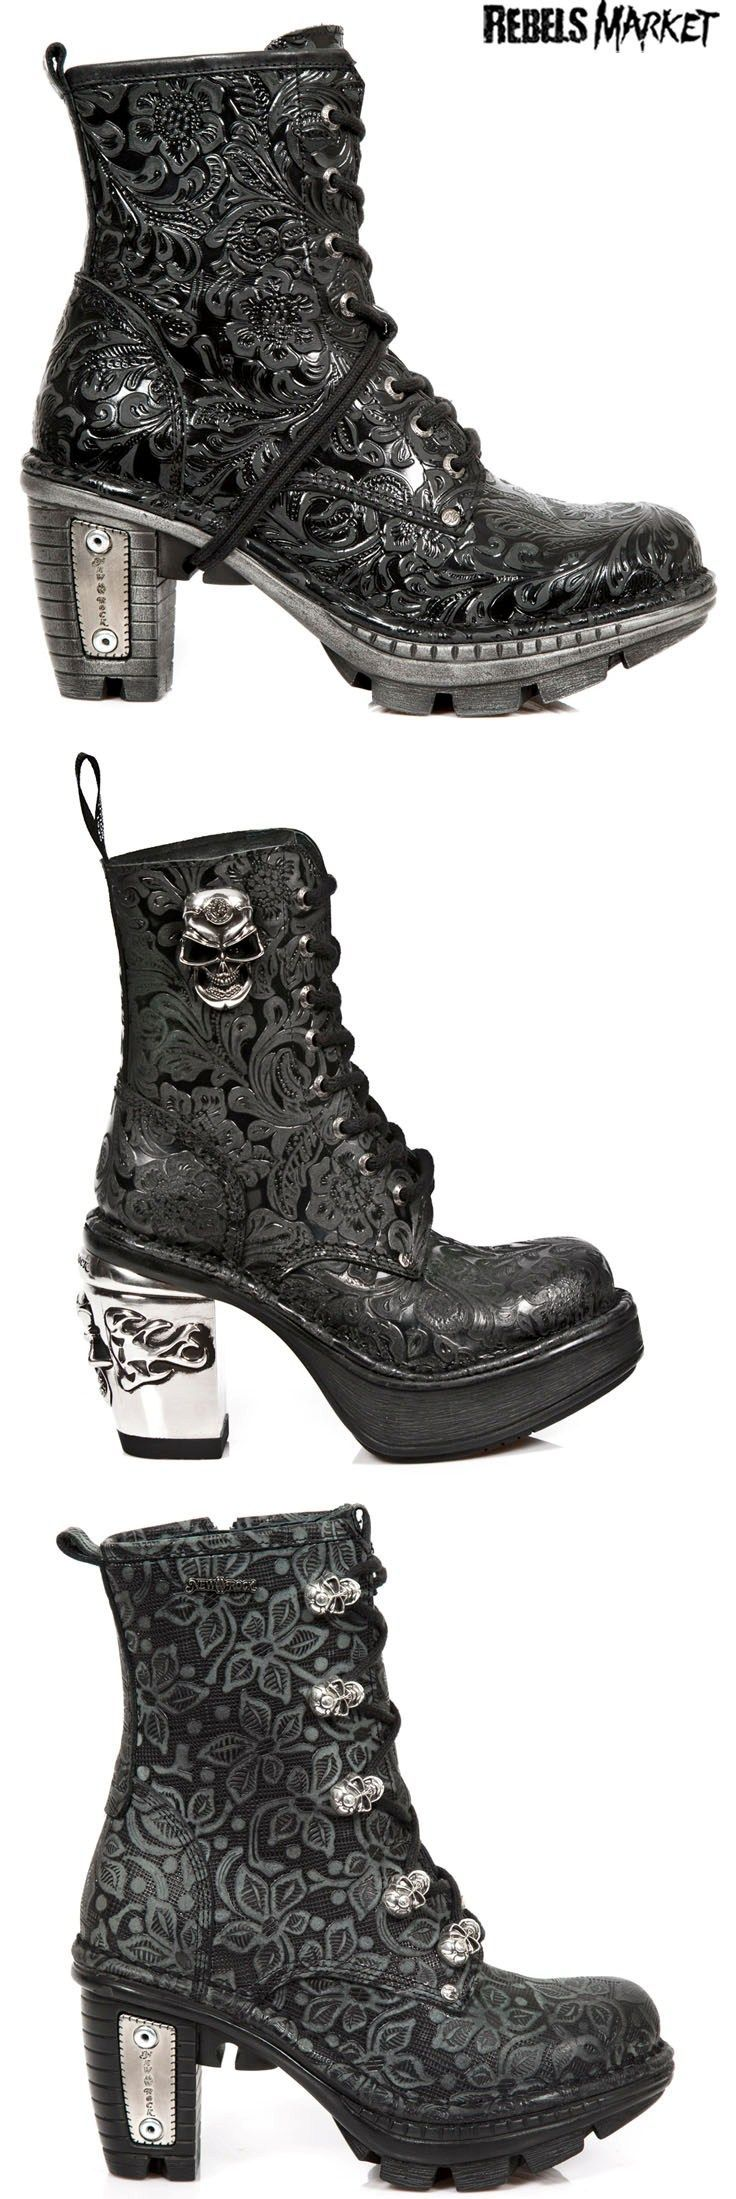 Shop Skulls Goth Boots At Rebelsmarket Goth Boots Cute Goth Outfits Skull Outfits